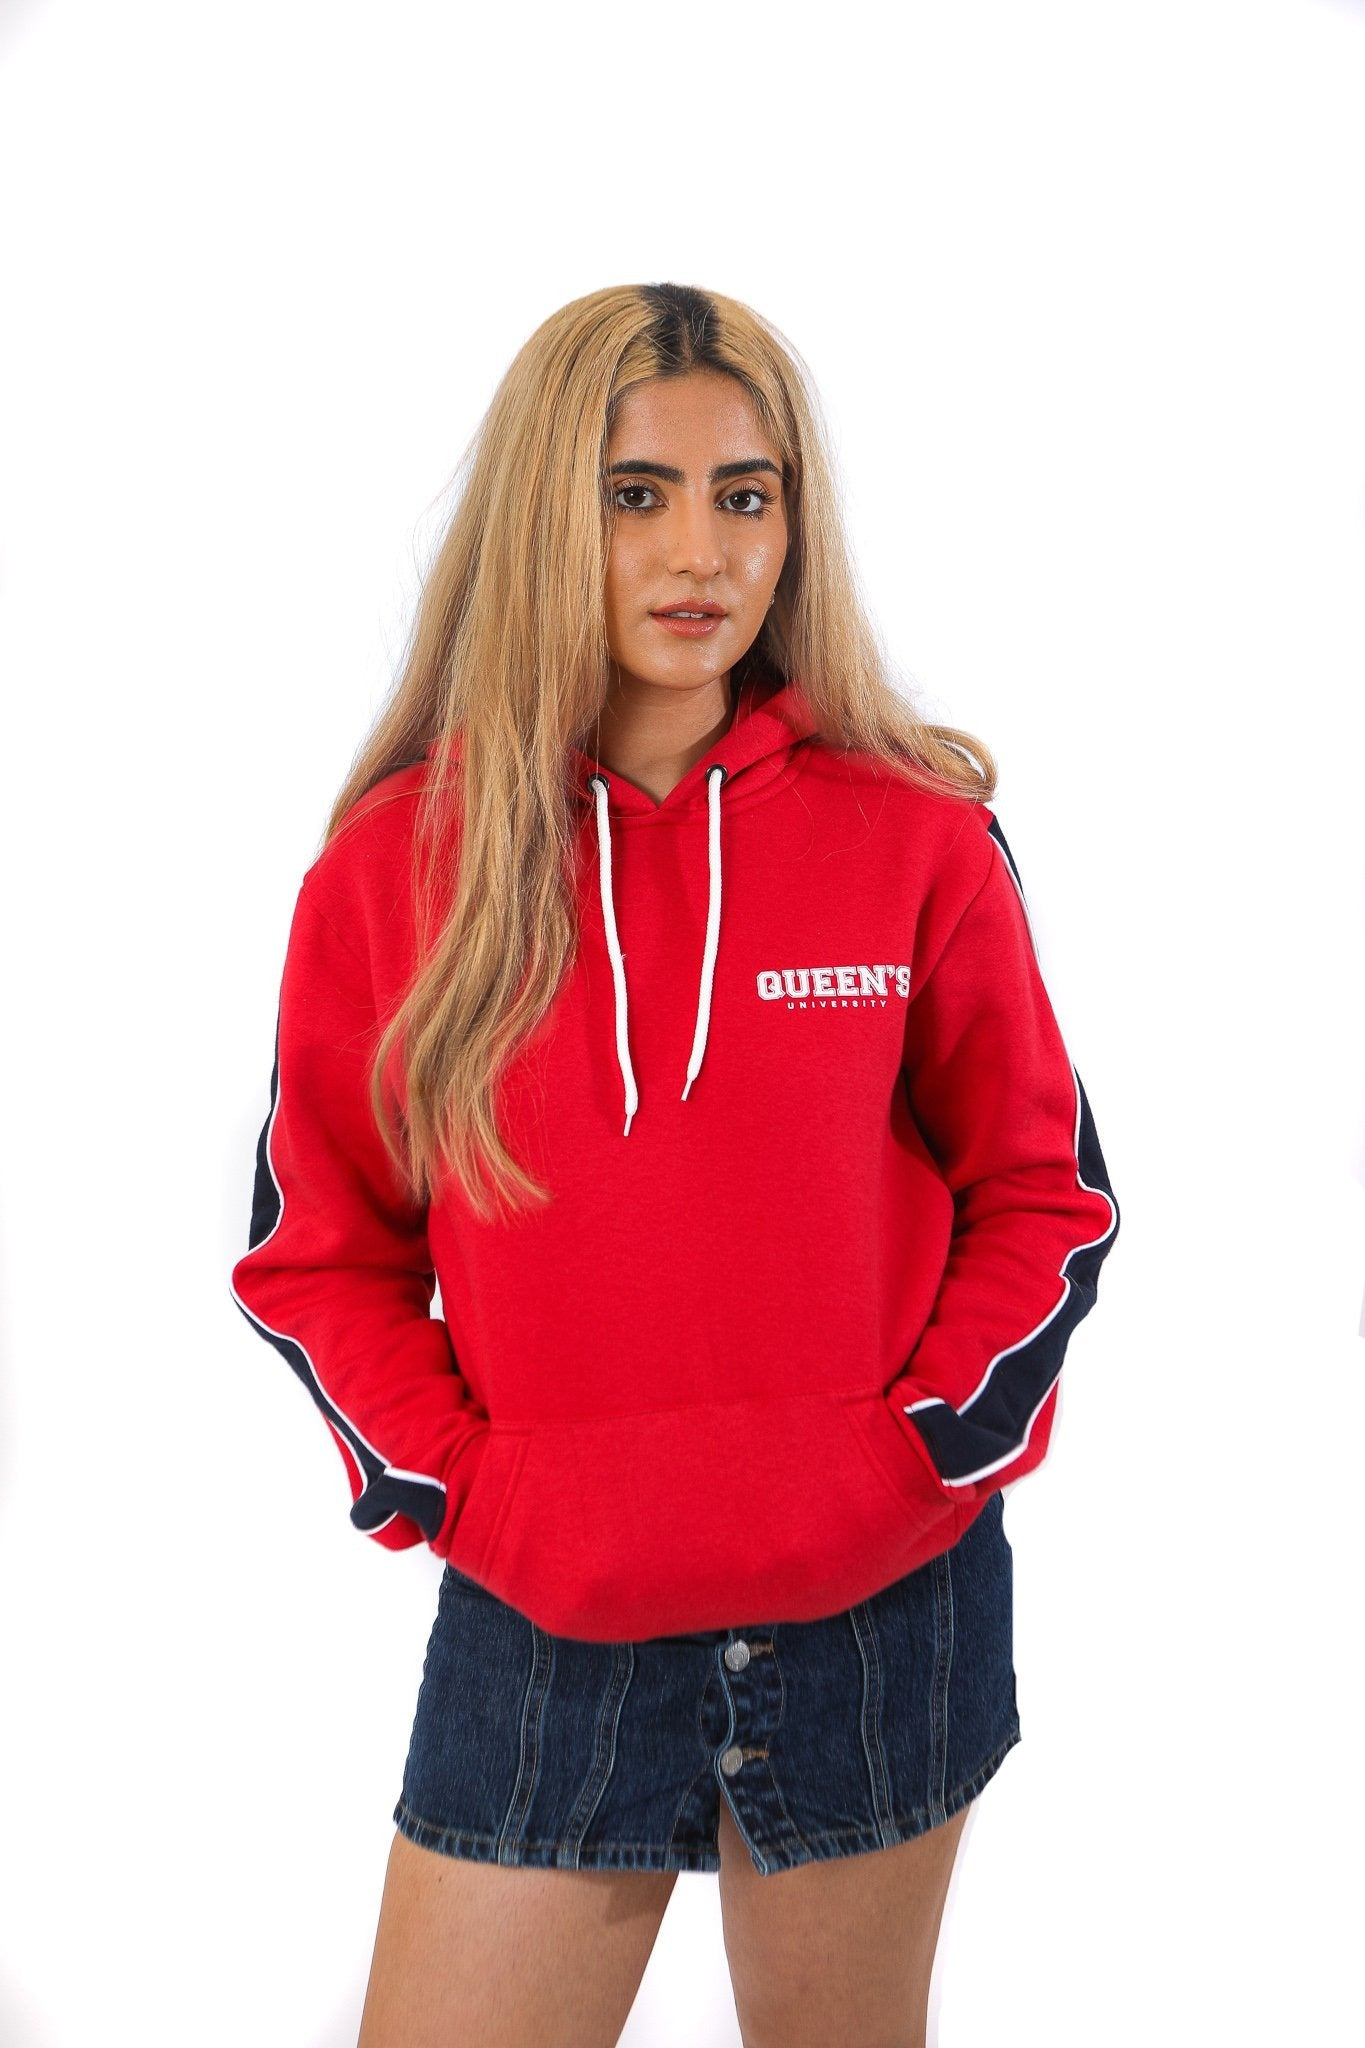 Red hoodie with blue arm stripes and a white queen's logo